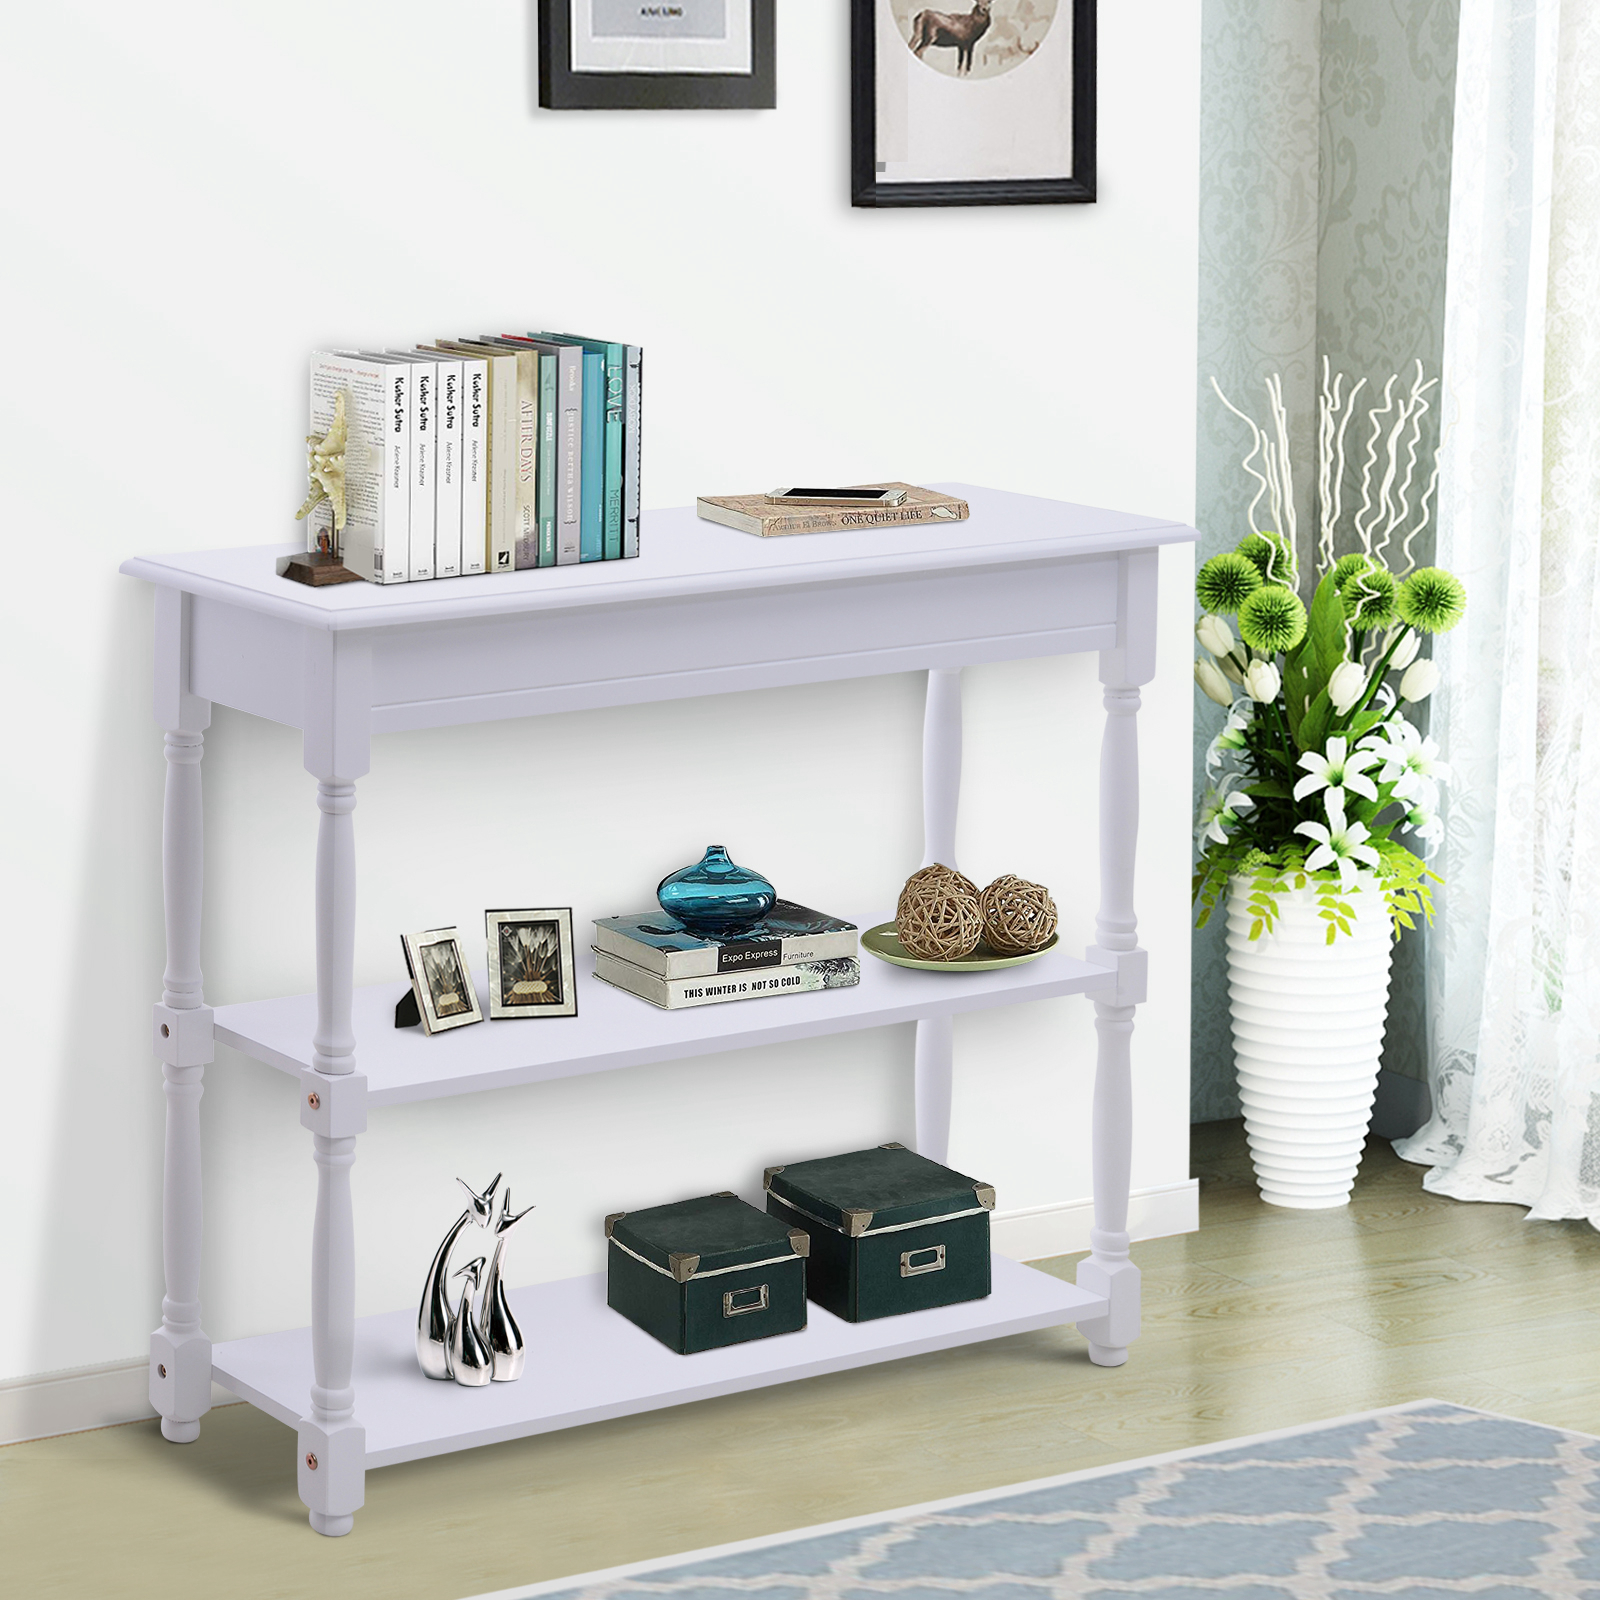 Details About Wood Console Table White Modern Accent Shelf Stand Sofa  Entryway Hall Furniture